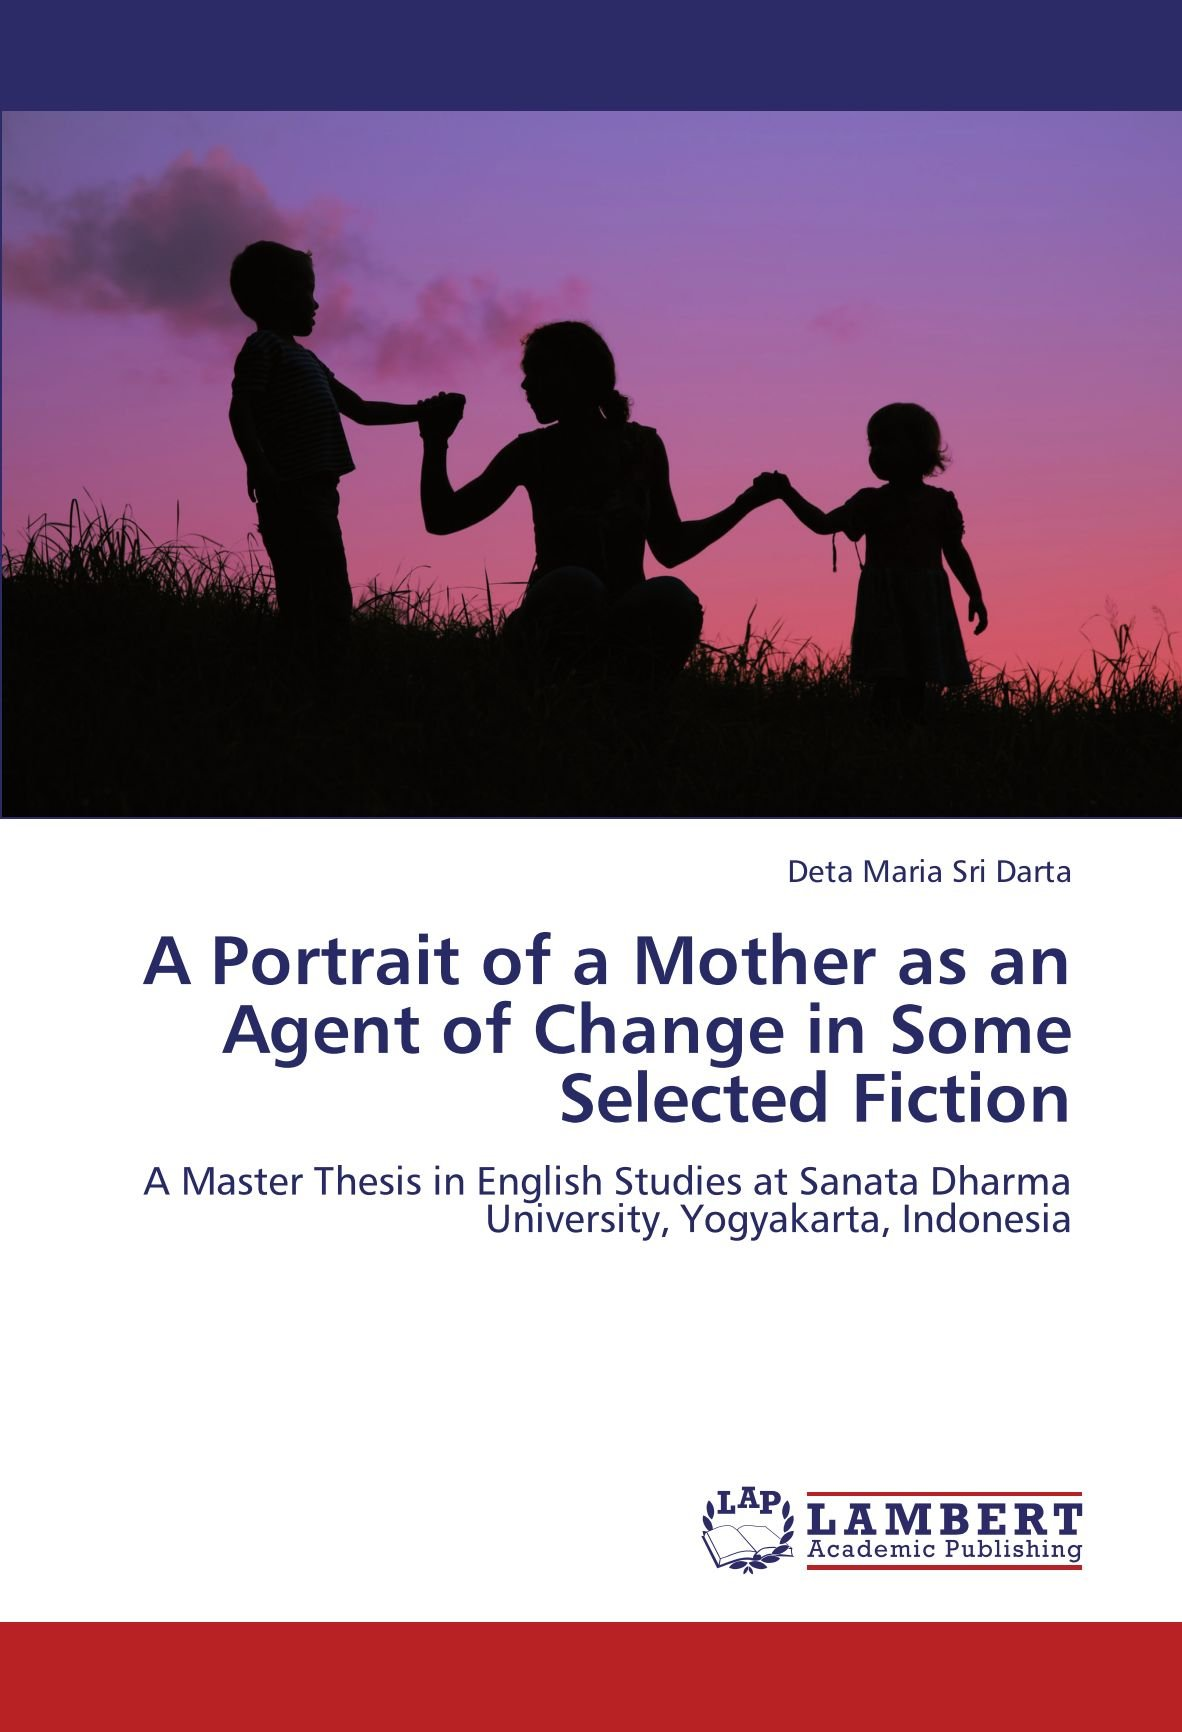 A Portrait of a Mother as an Agent of Change in Some Selected Fiction: A Master Thesis in English Studies at Sanata Dharma University, Yogyakarta, Indonesia pdf